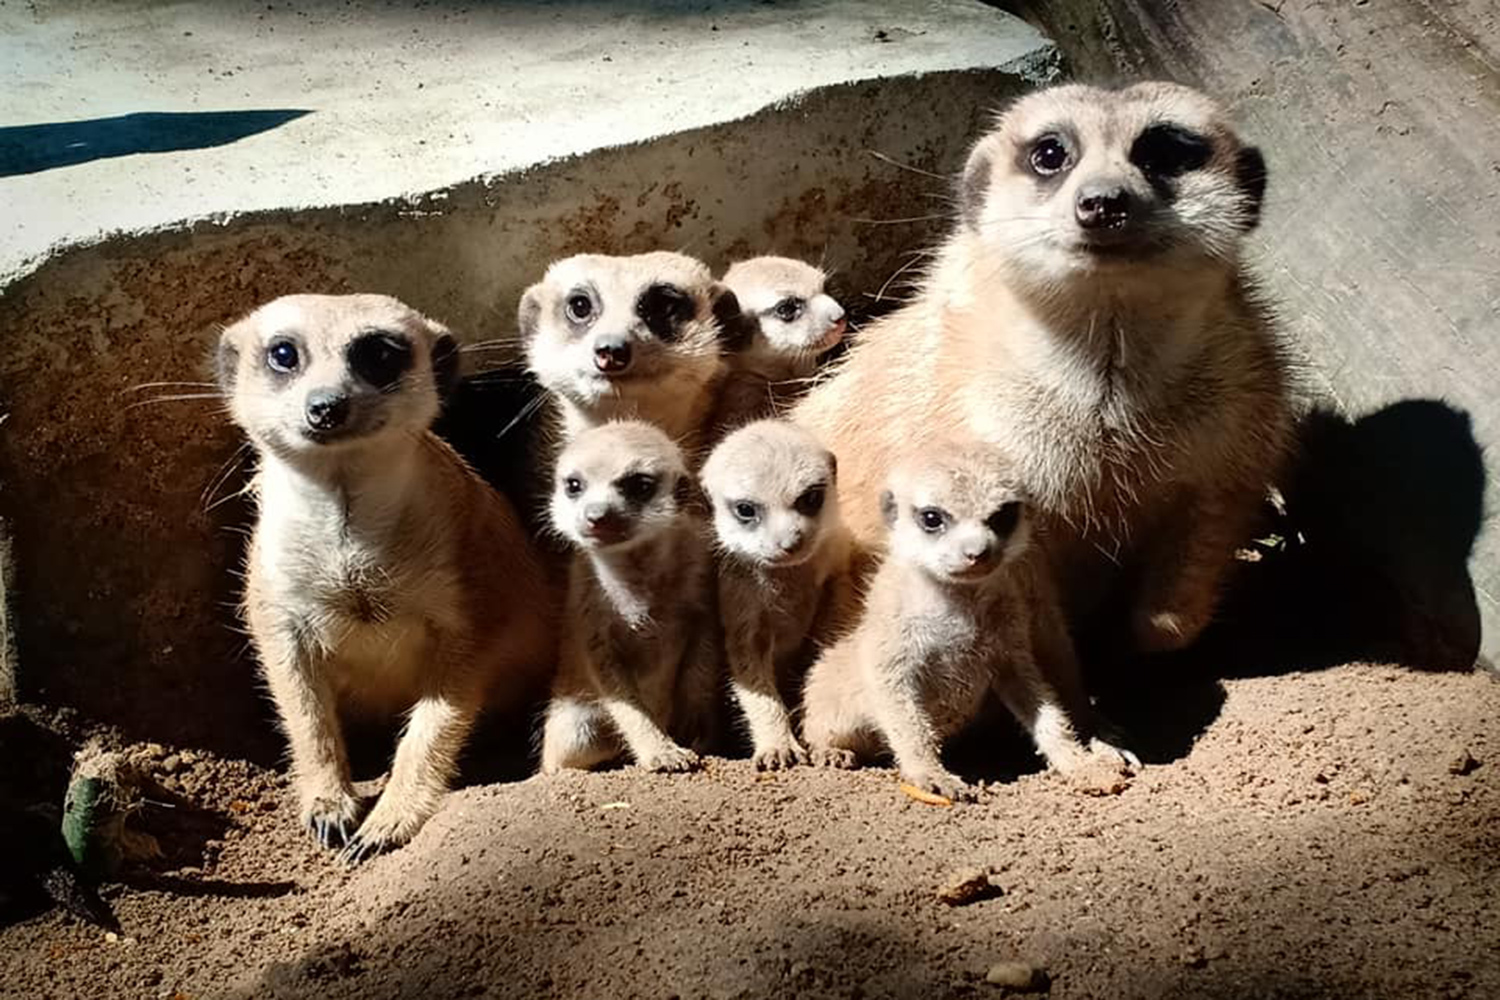 Meerkats are the star attractions at Songkhla zoo in Songkhla. (Photo from @SongkhlaZooPage Facebook account)